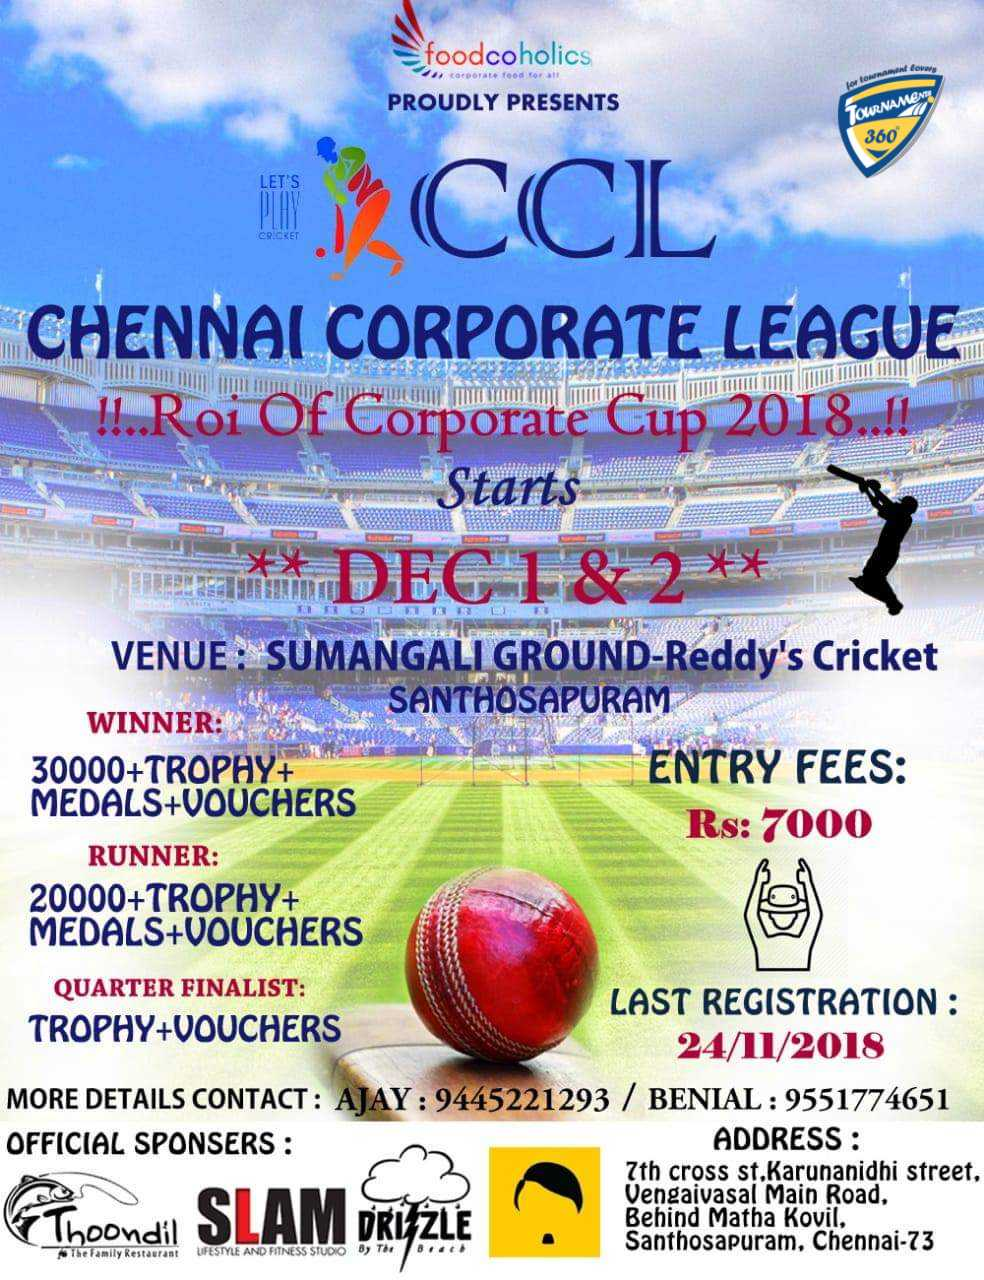 Chennai Corporate League 2018